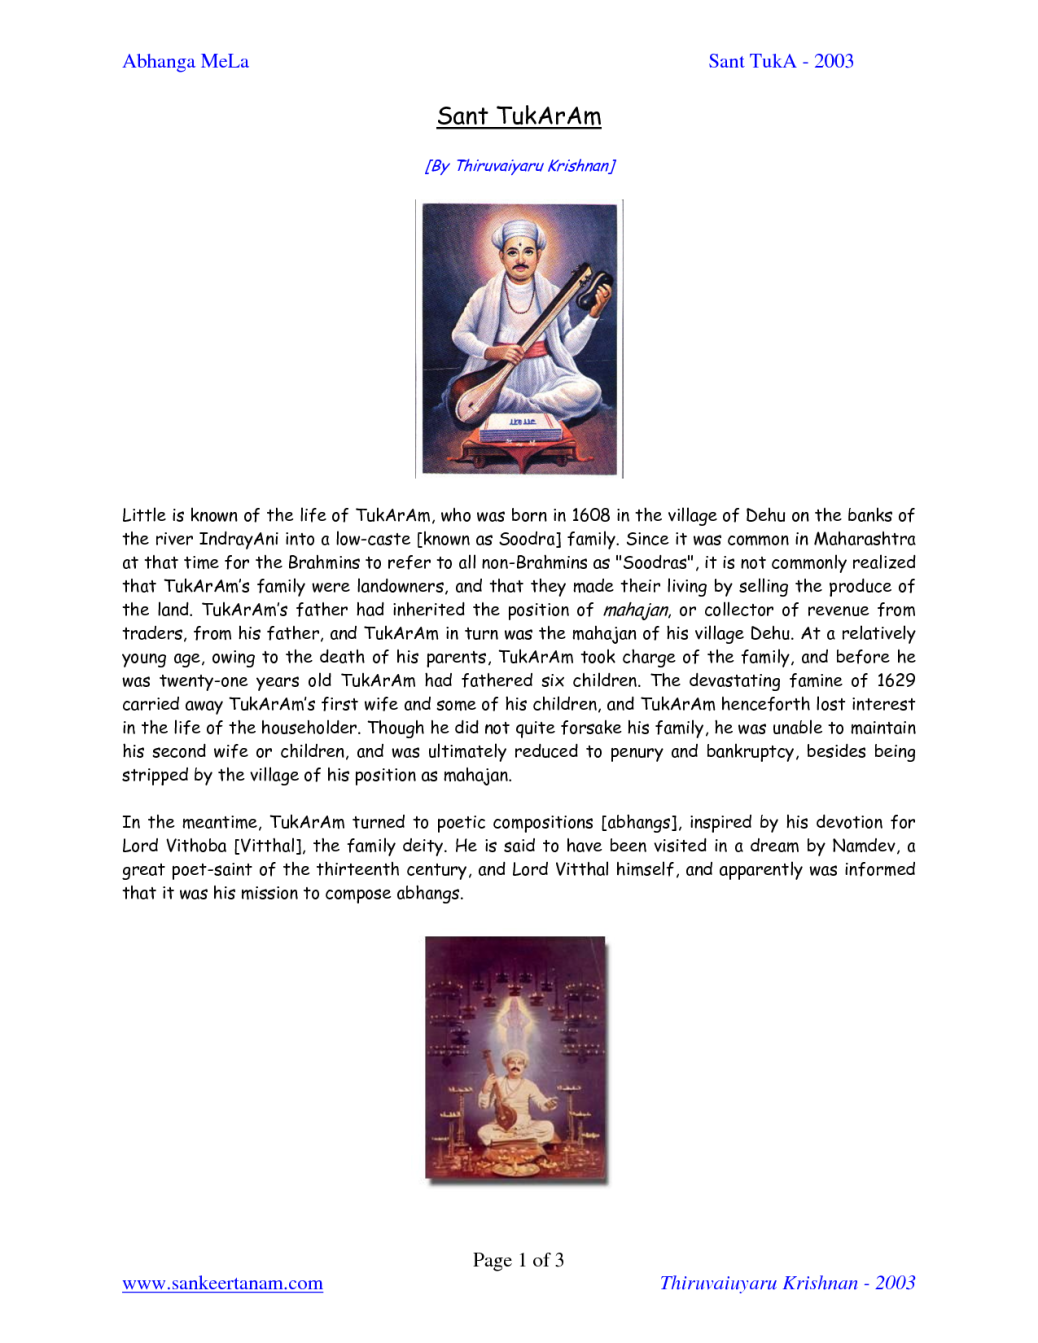 essay on sant tukaram in marathi written Tukaram gatha is one of the most well known marathi poetry (abhang) written by  the famous marathi sant tukaram tukaram (1608–1645) was a prominent.